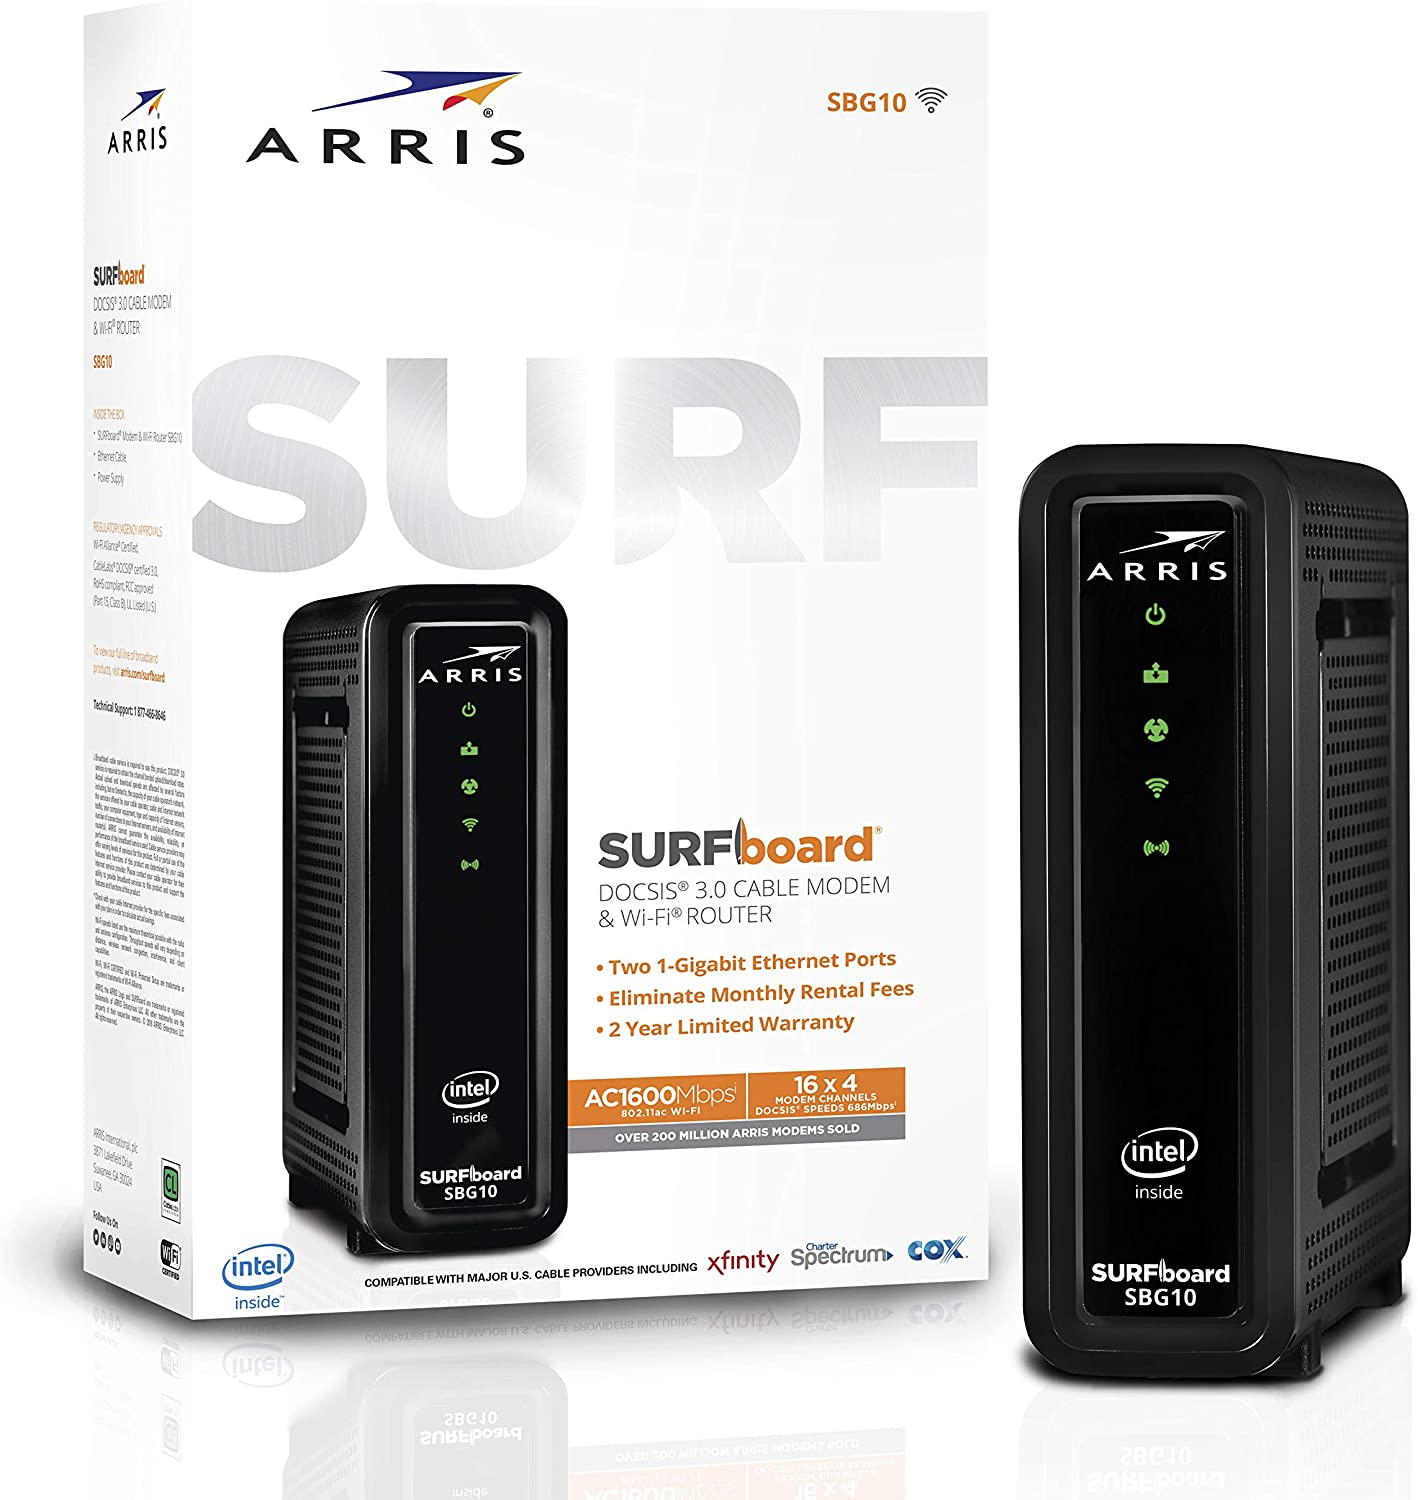 ARRIS Surfboard SBG10 DOCSIS 3.0 Cable